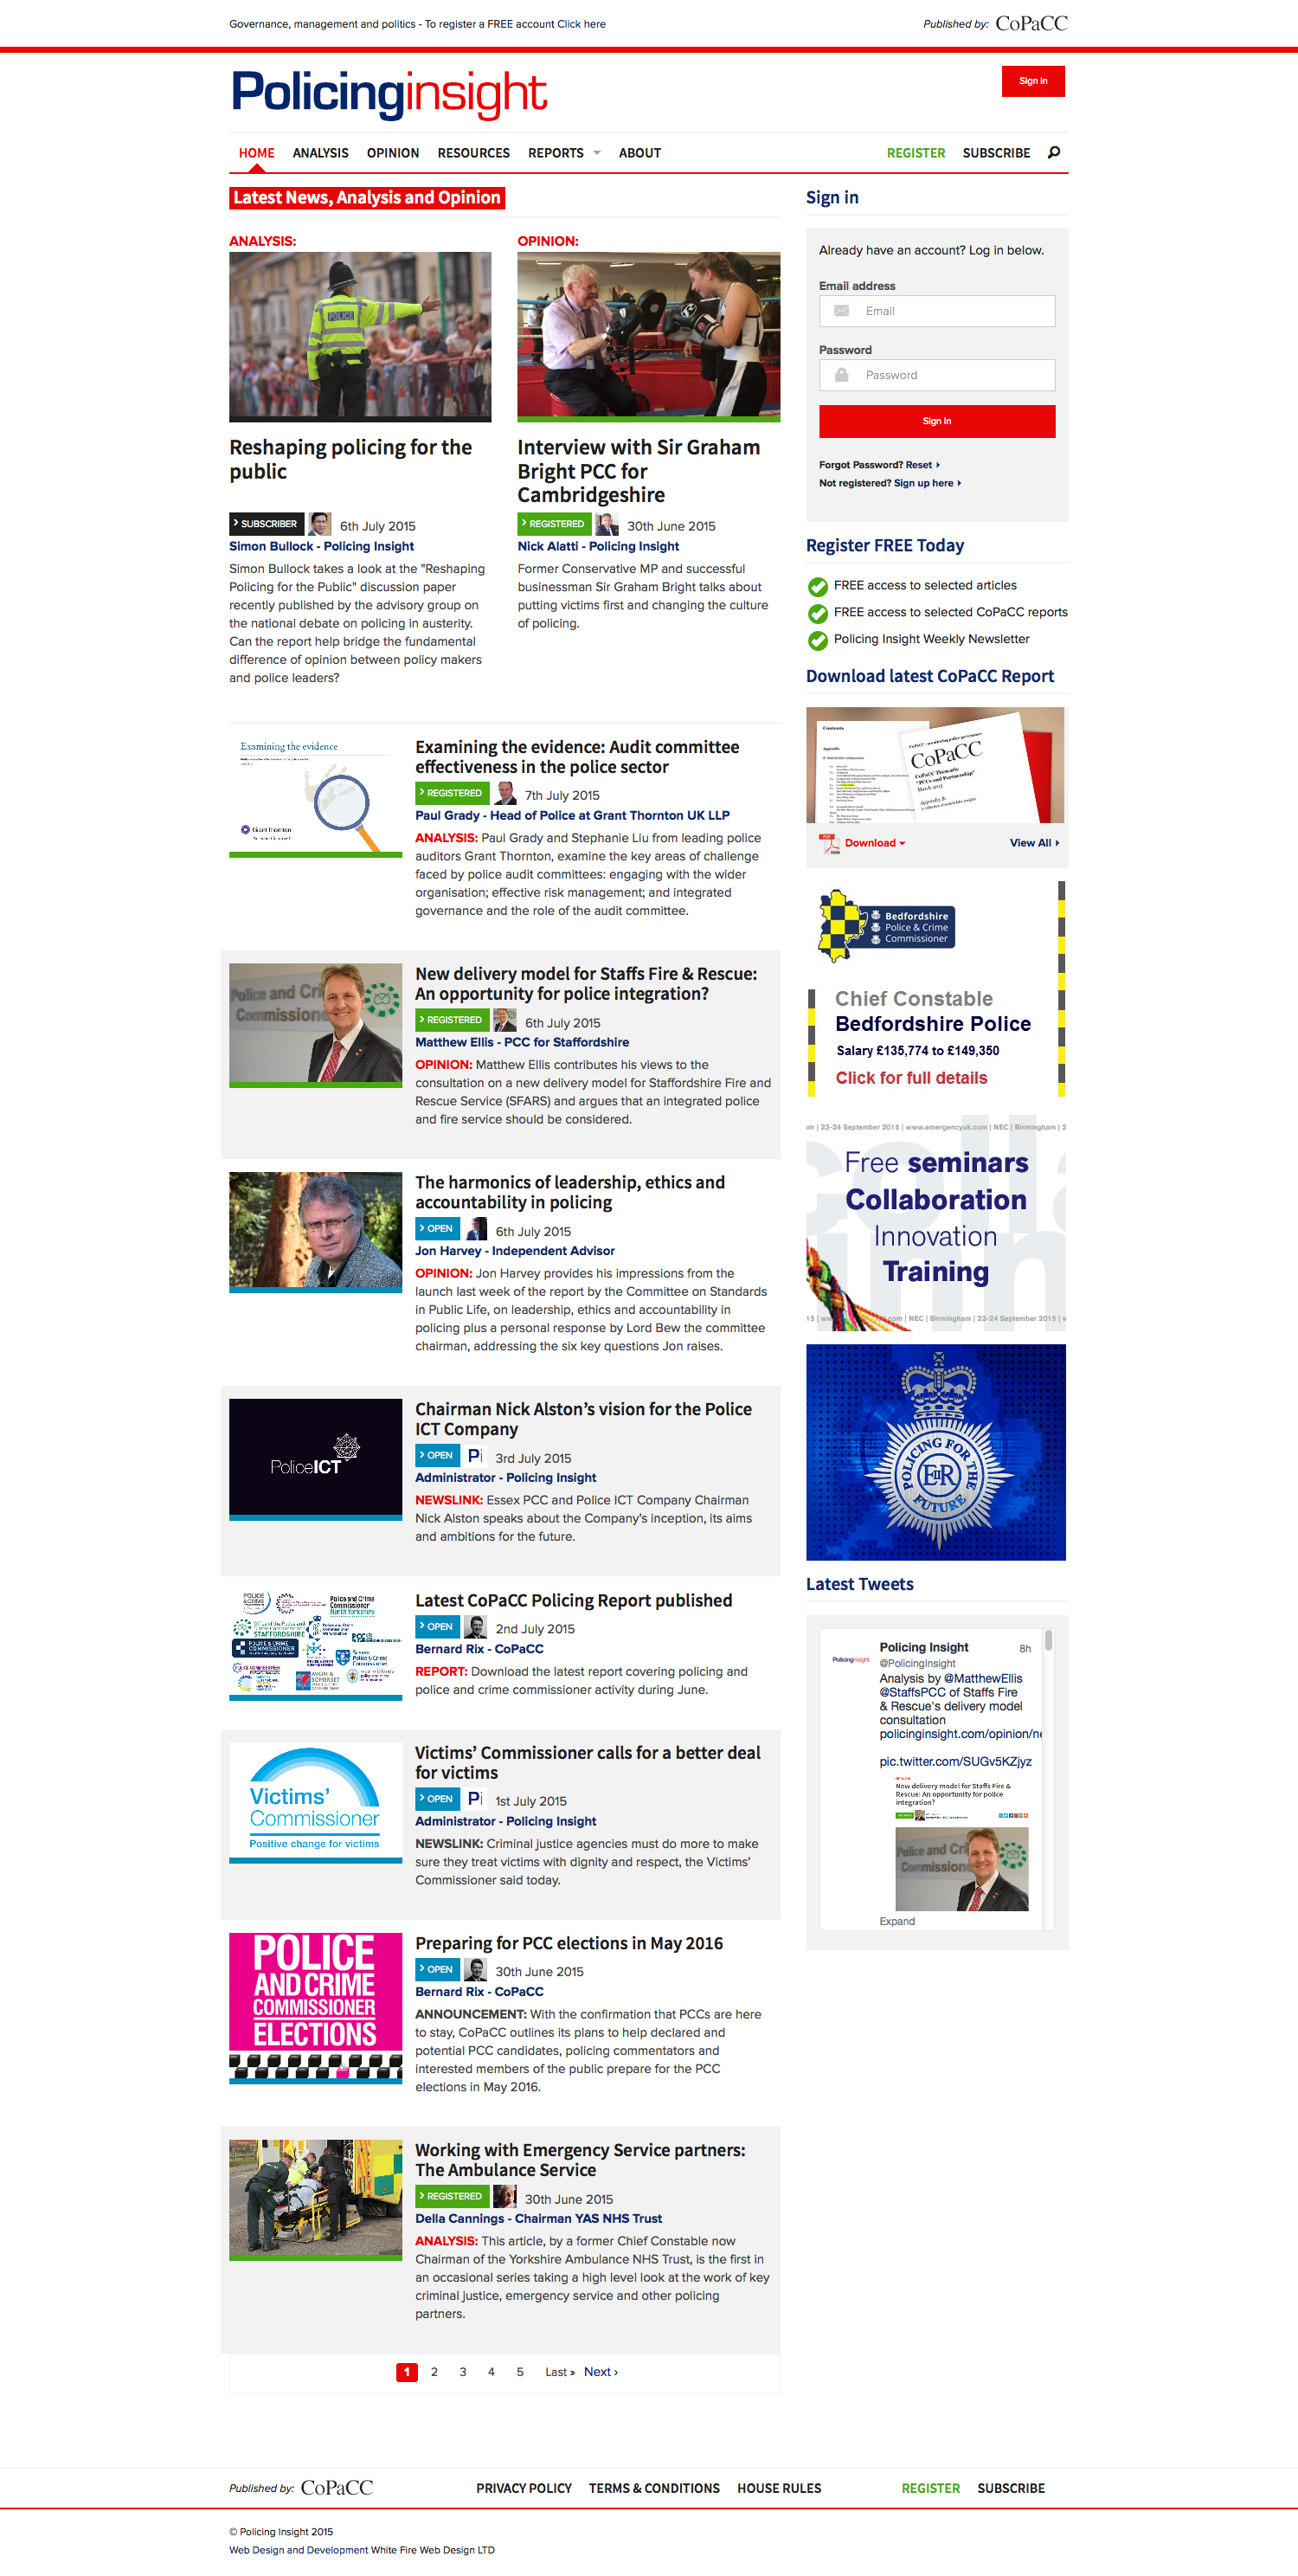 Policing_Insight_-_Governance,_management_and_politics_-_2015-07-07_16.25.21